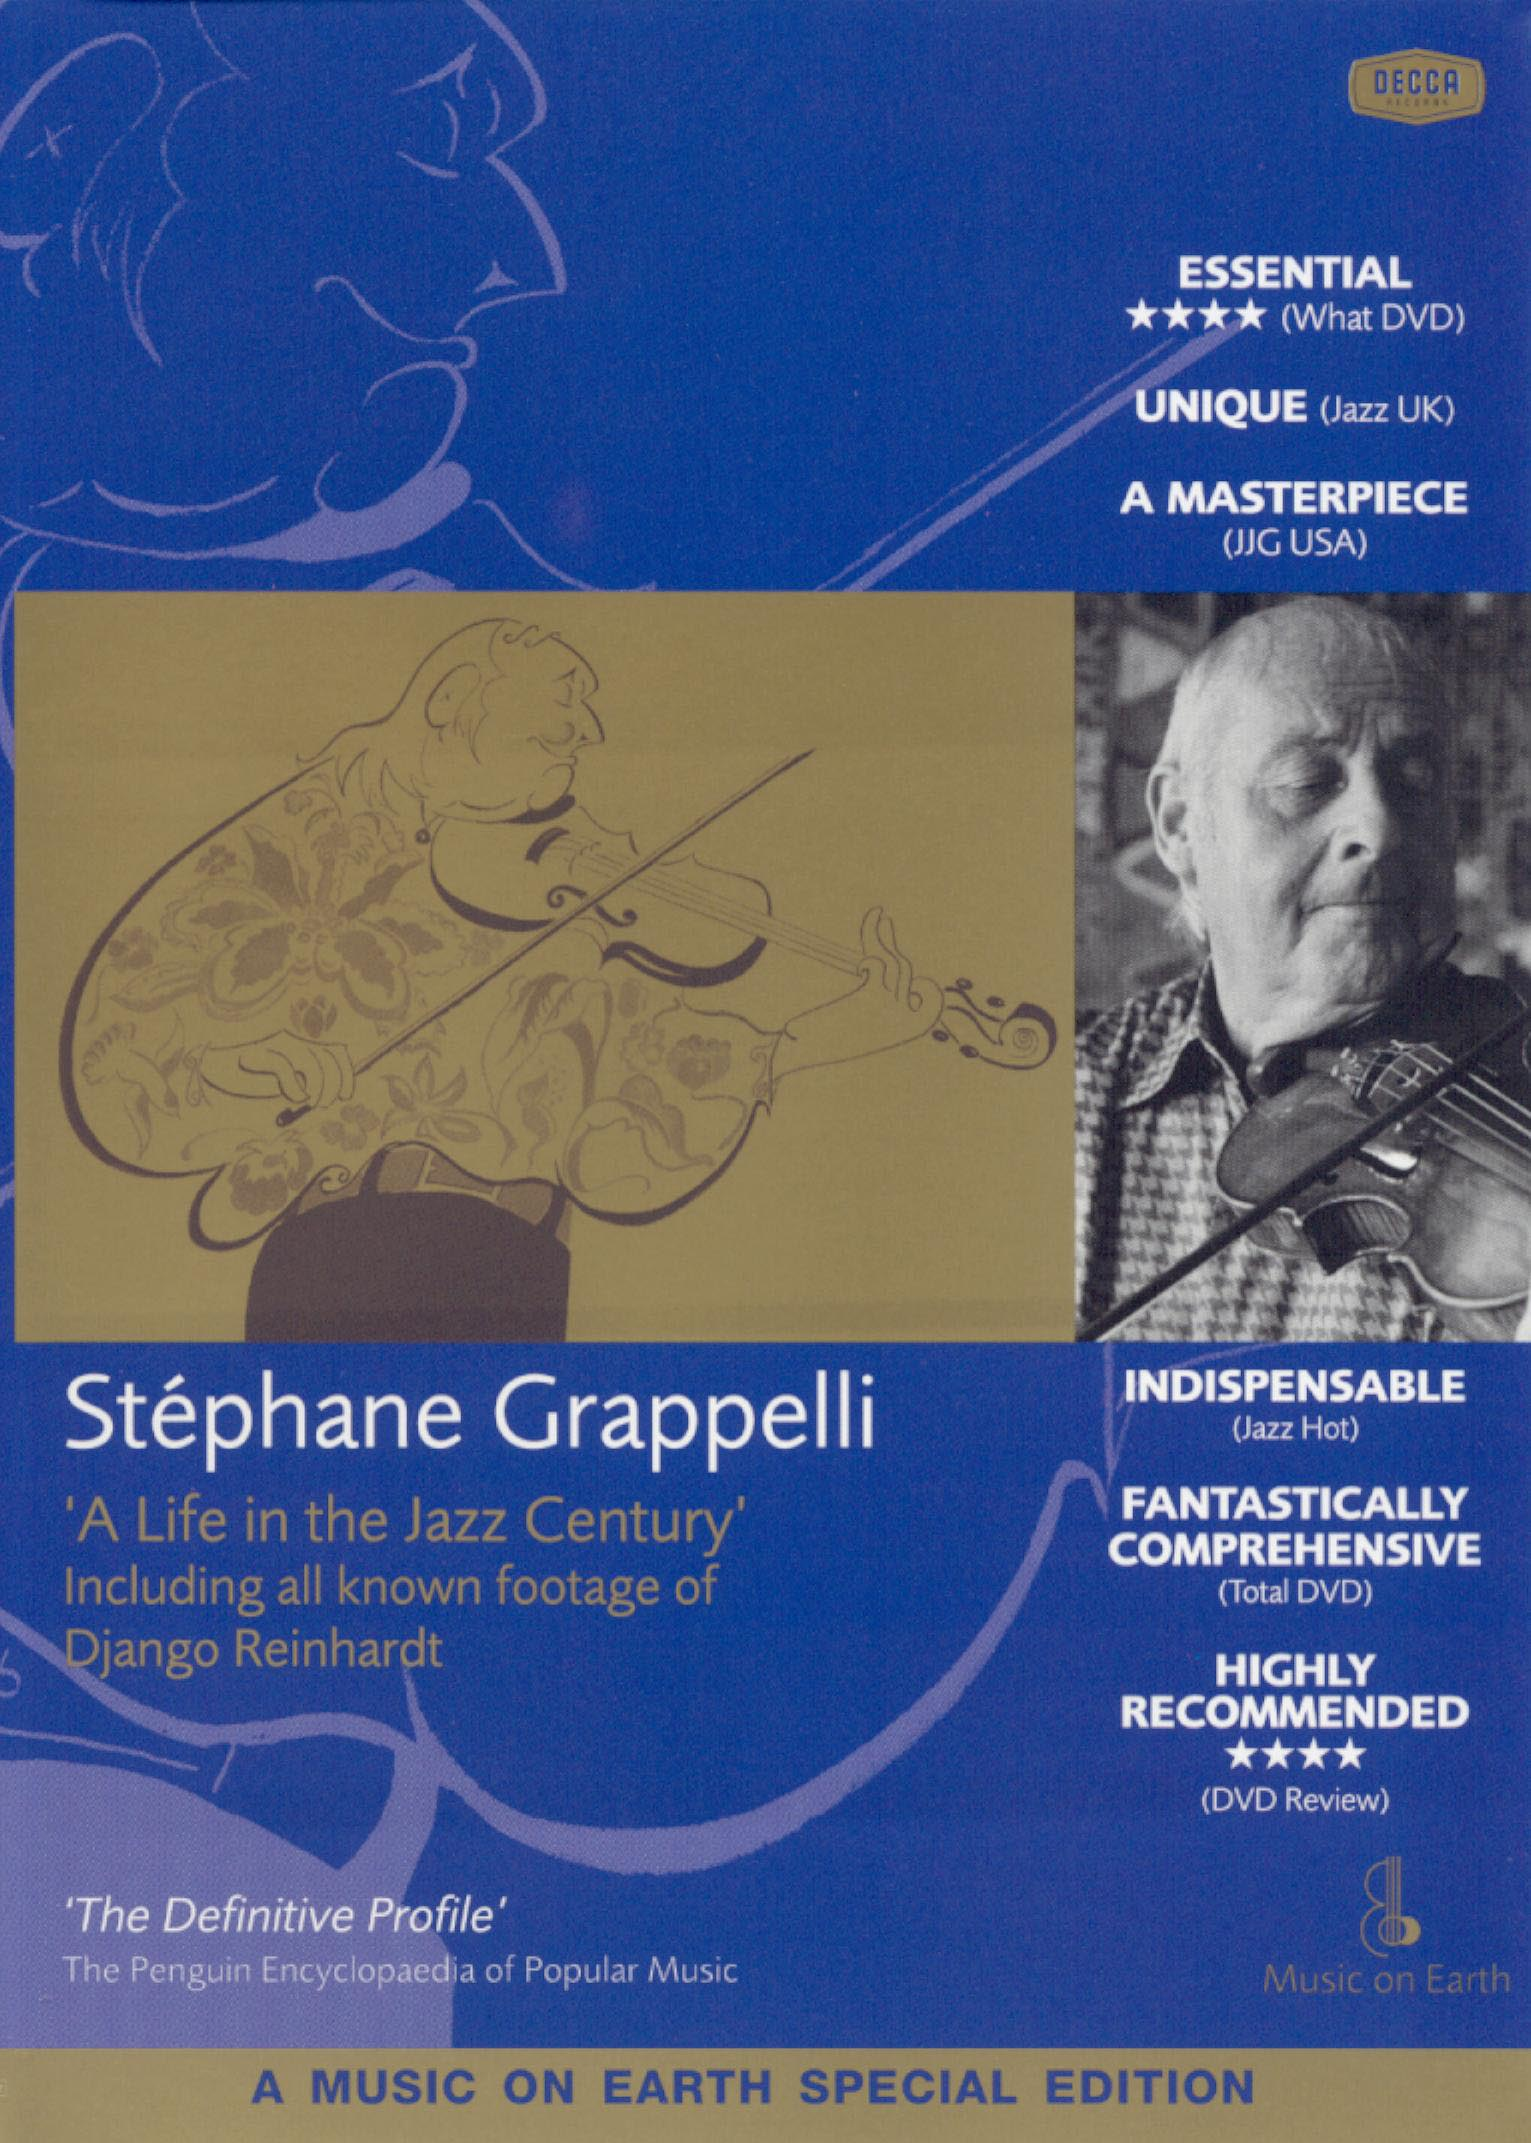 Stéphane Grappelli: A Life in the Jazz Century